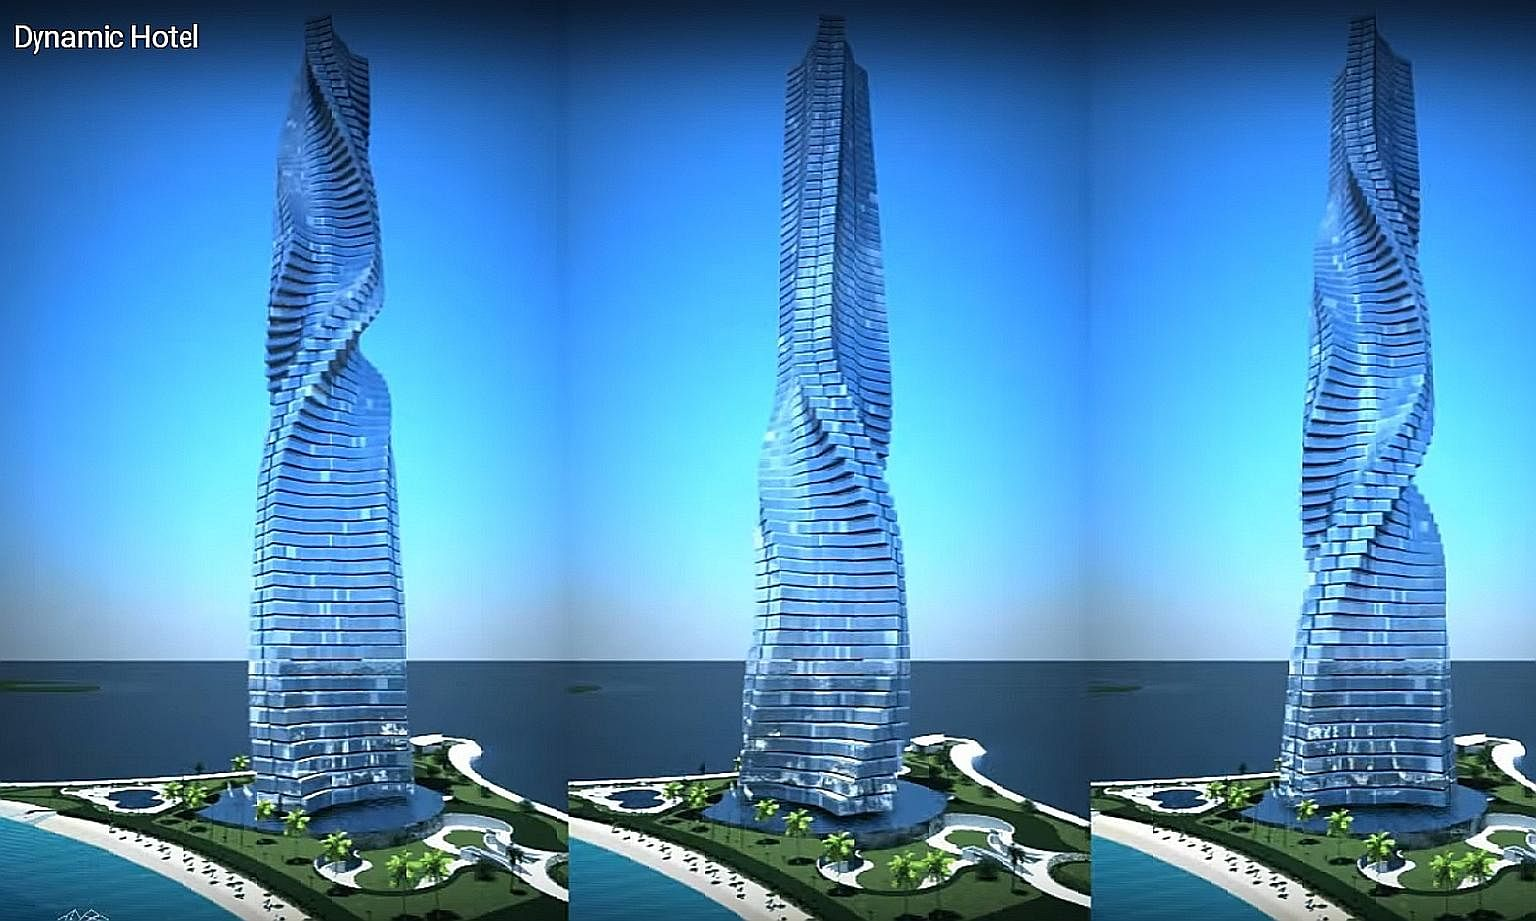 An artist's impression of the Dynamic Tower Hotel, which will be the world's first rotating skyscraper. Residents will be able to control rotation speeds and stop their apartment from spinning.